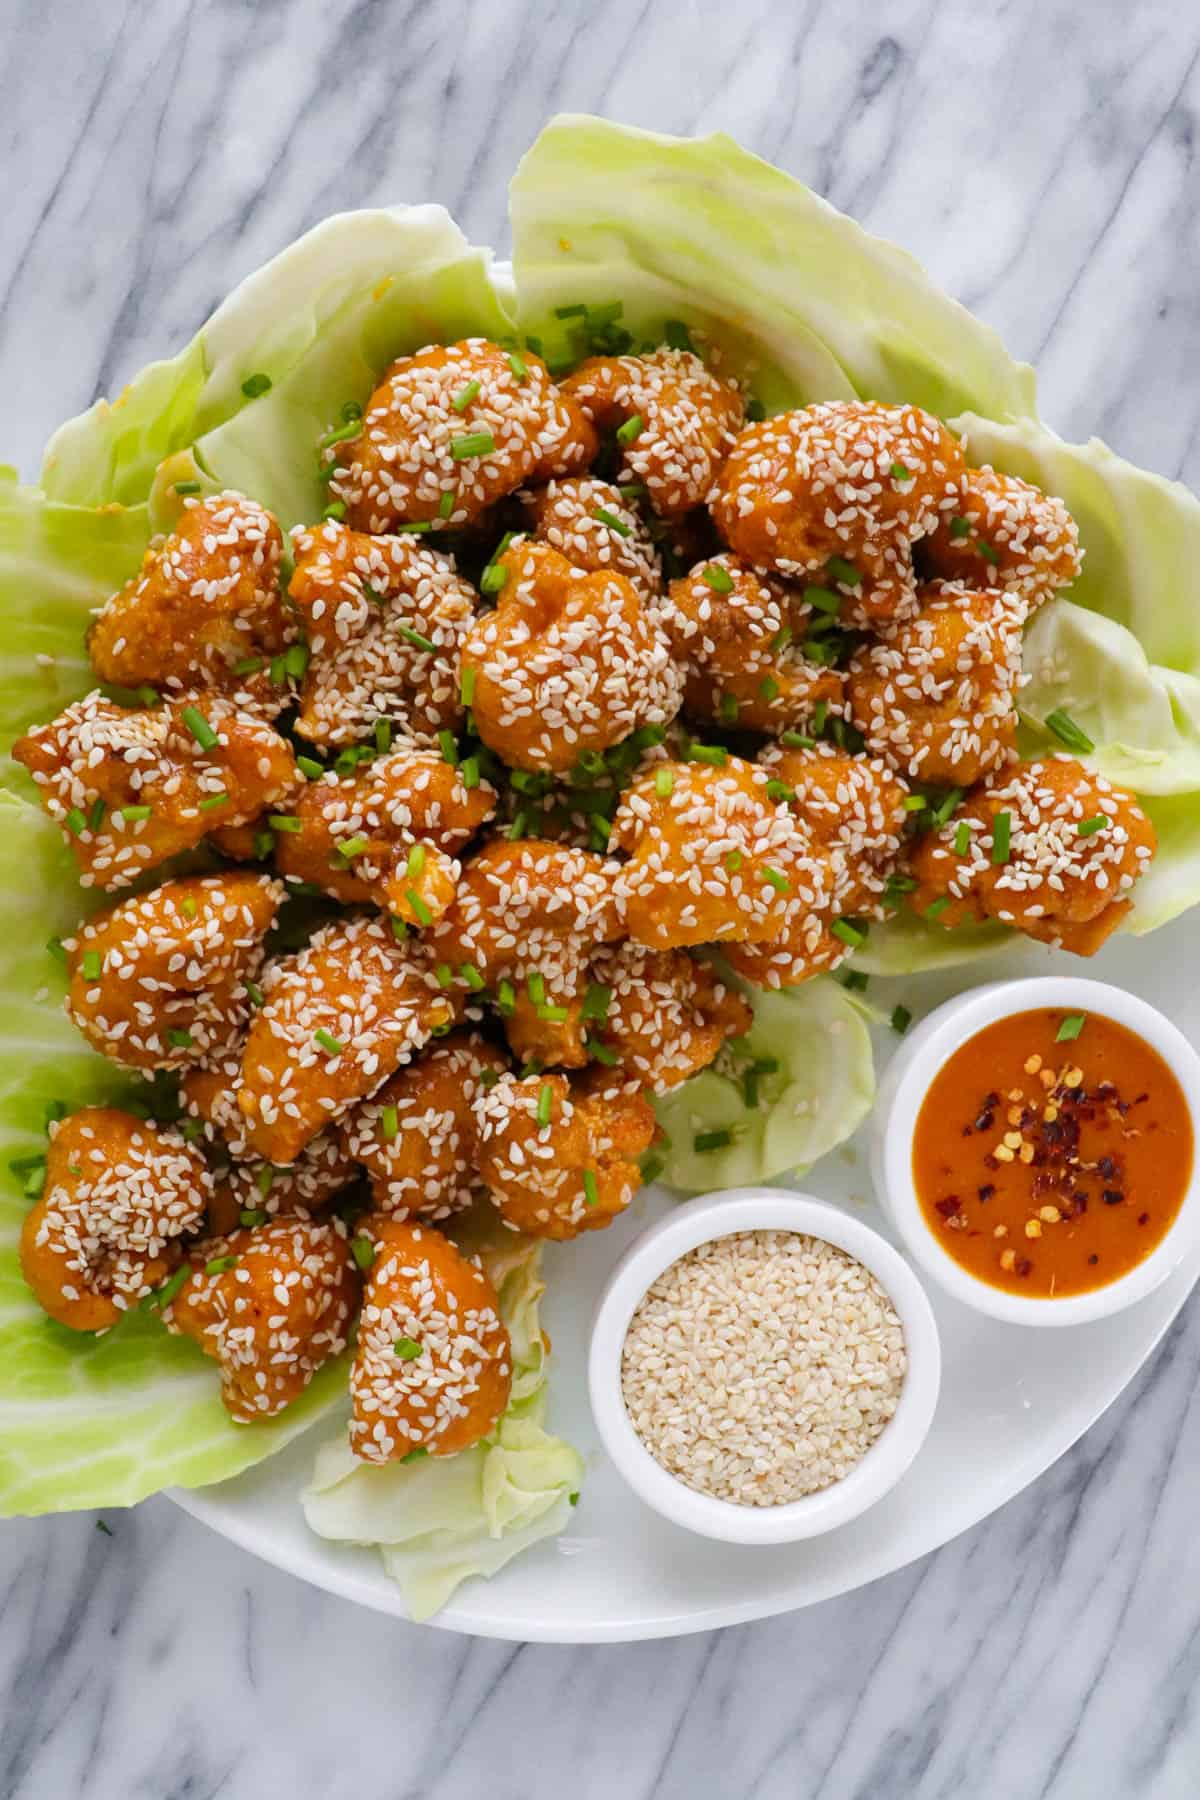 Baked cauliflower wings on plate with sesame seeds and extra sauce.